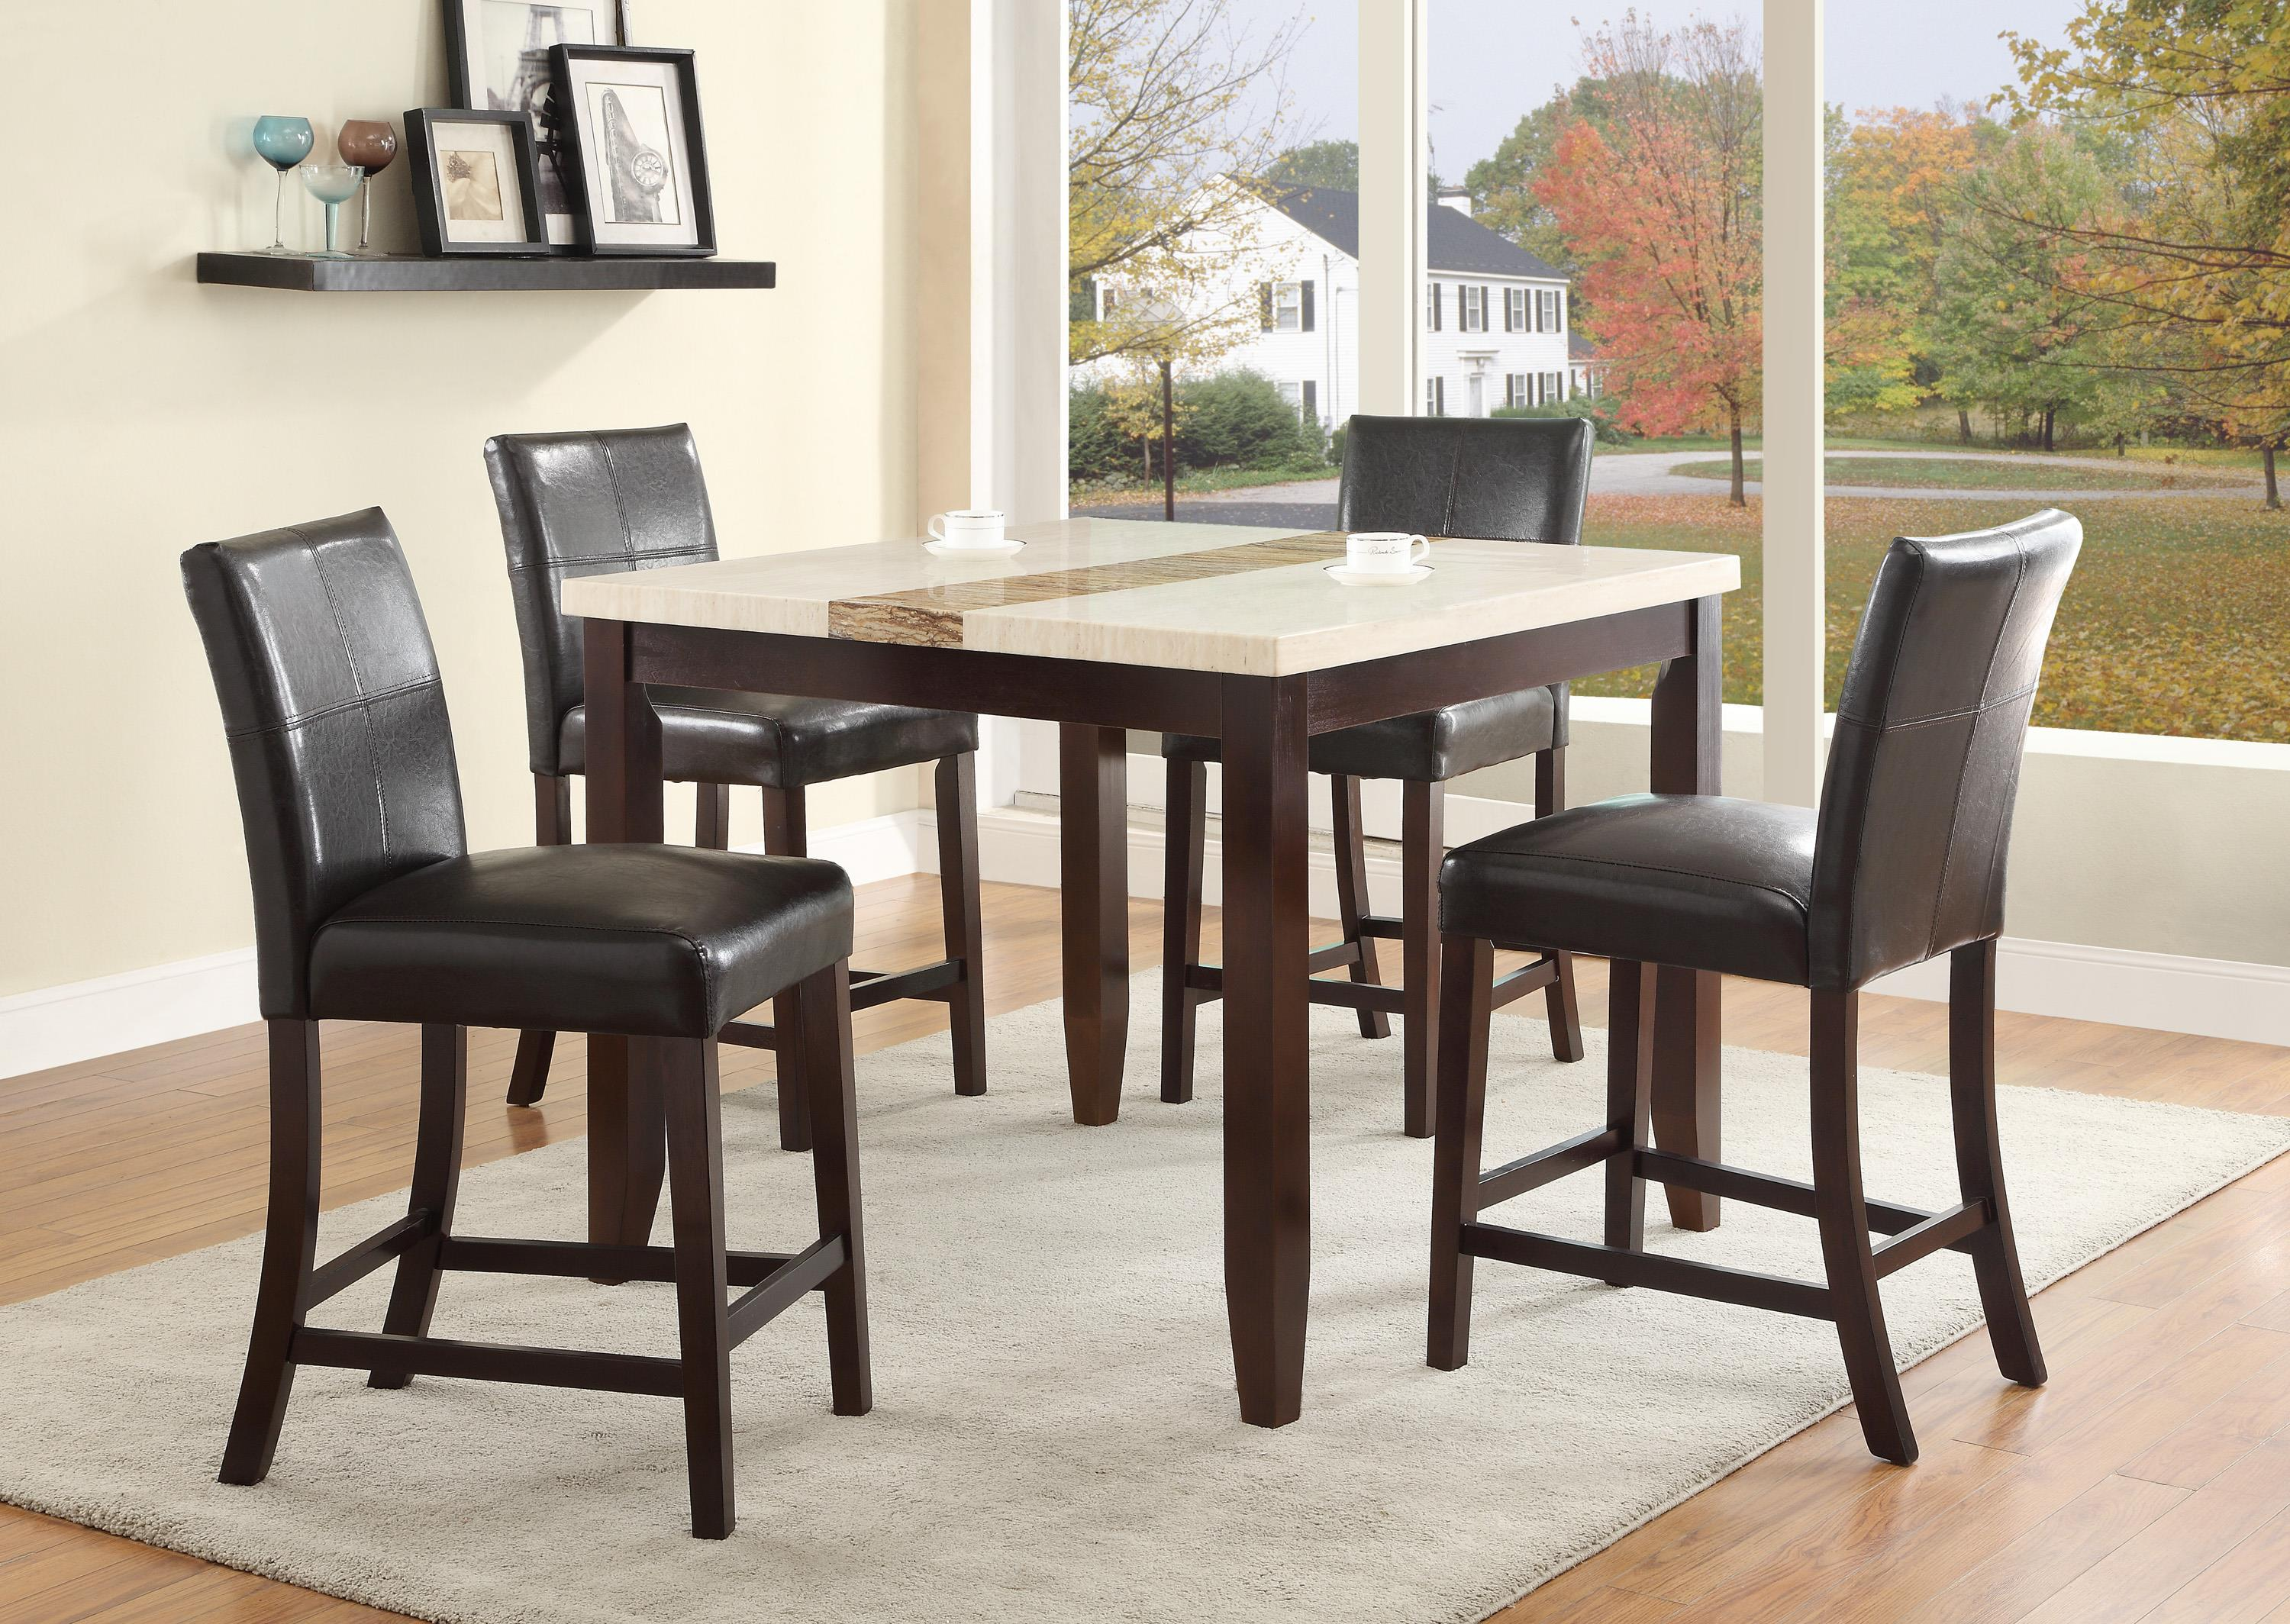 Glass Dining Table And Chairs Larissa 5 Piece Counter Height Table Set With Upholstered Side Chairs By Crown Mark At Royal Furniture